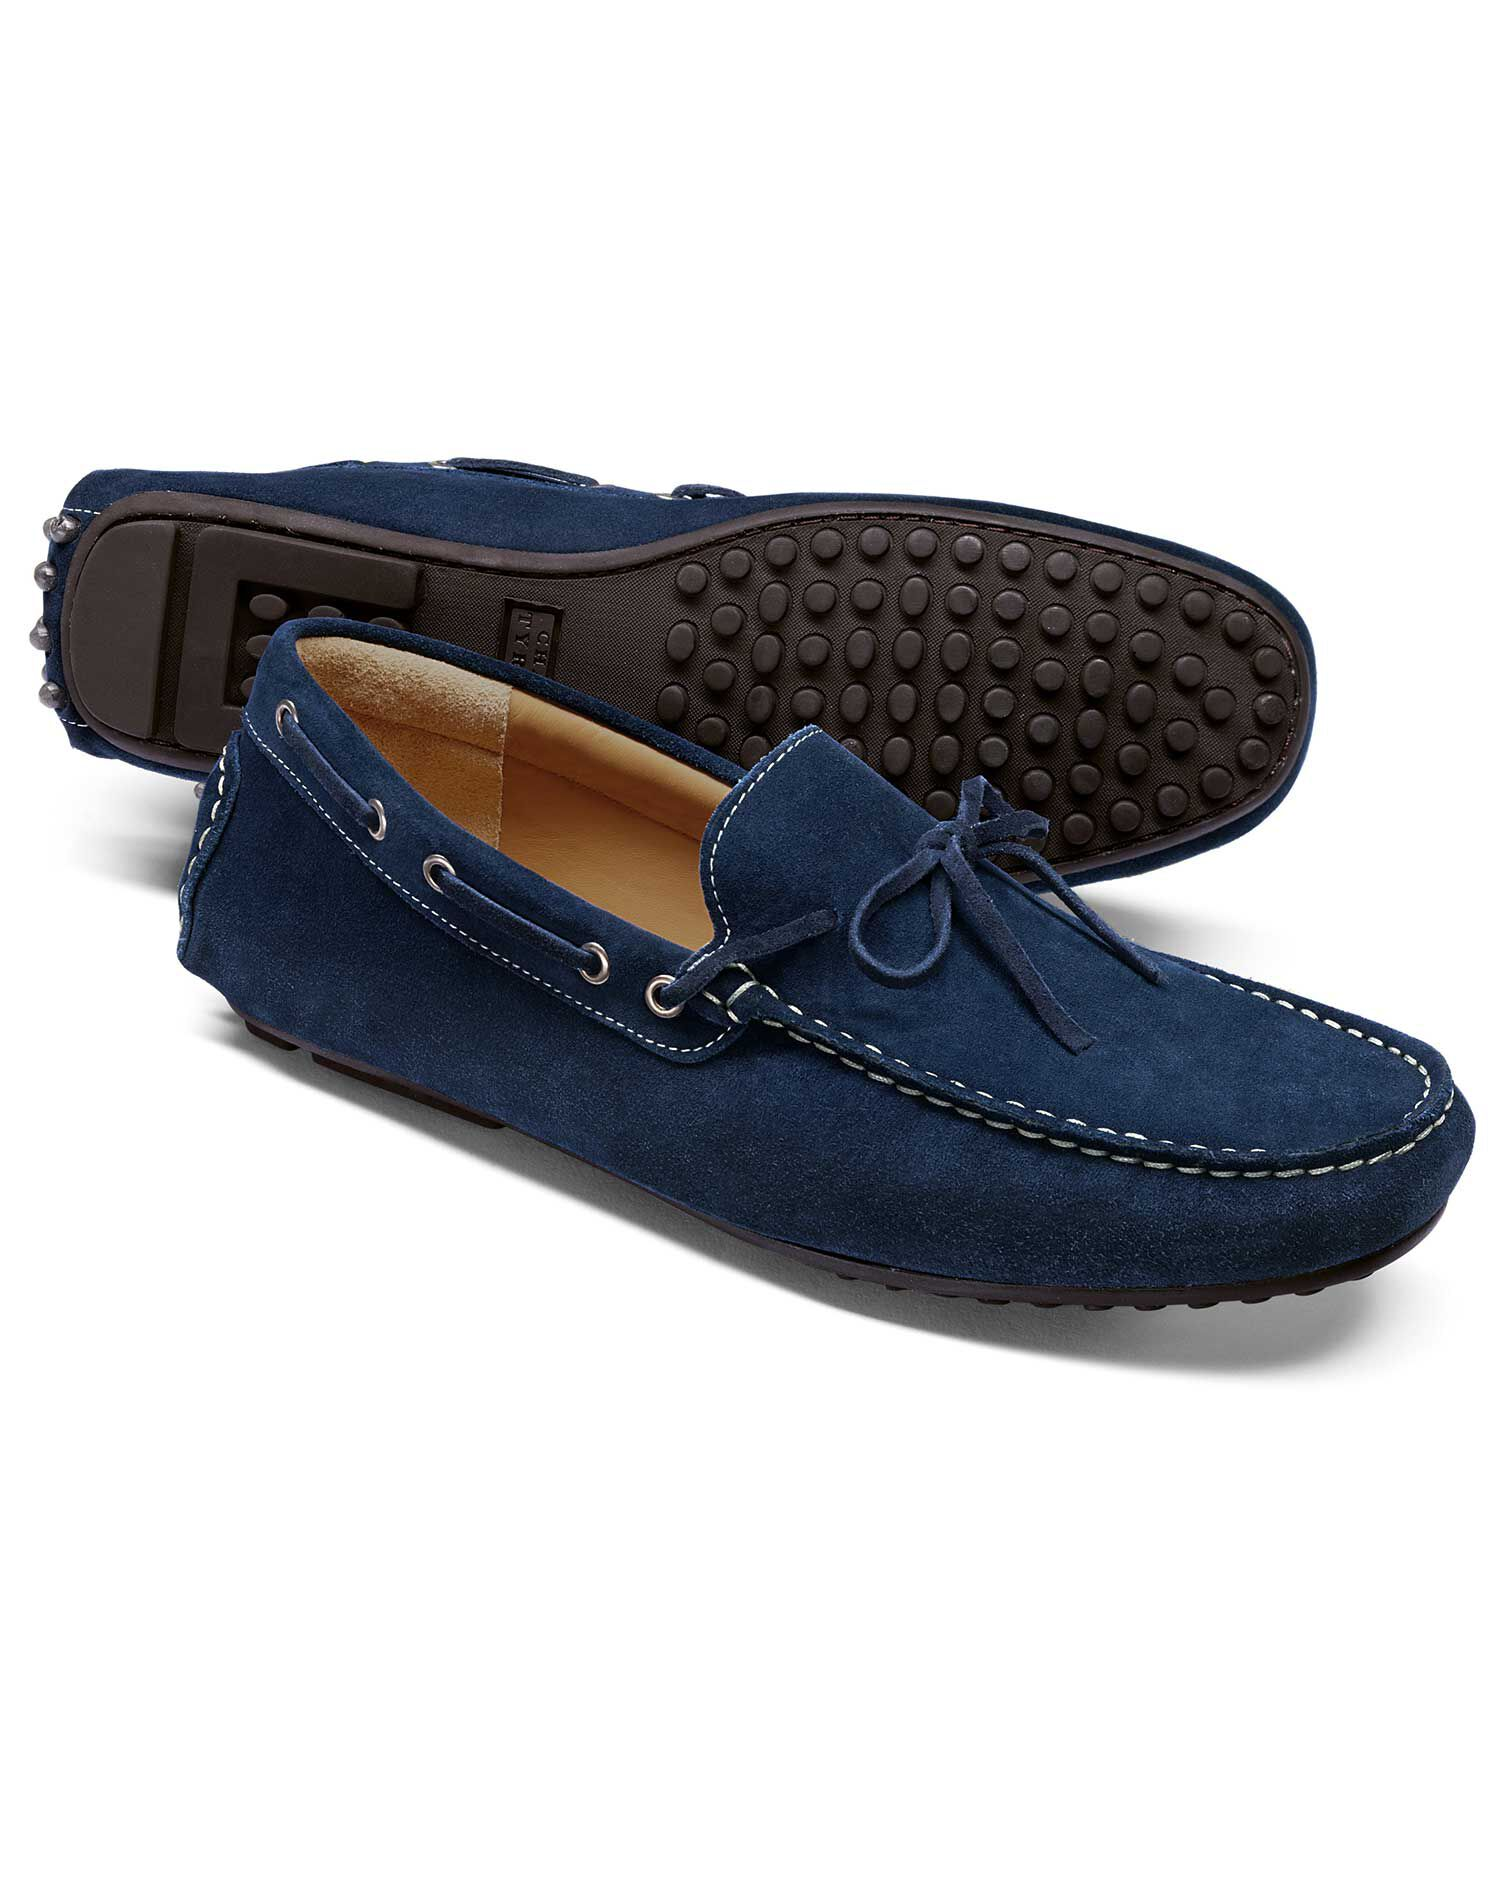 Blue suede driving loafer | Charles